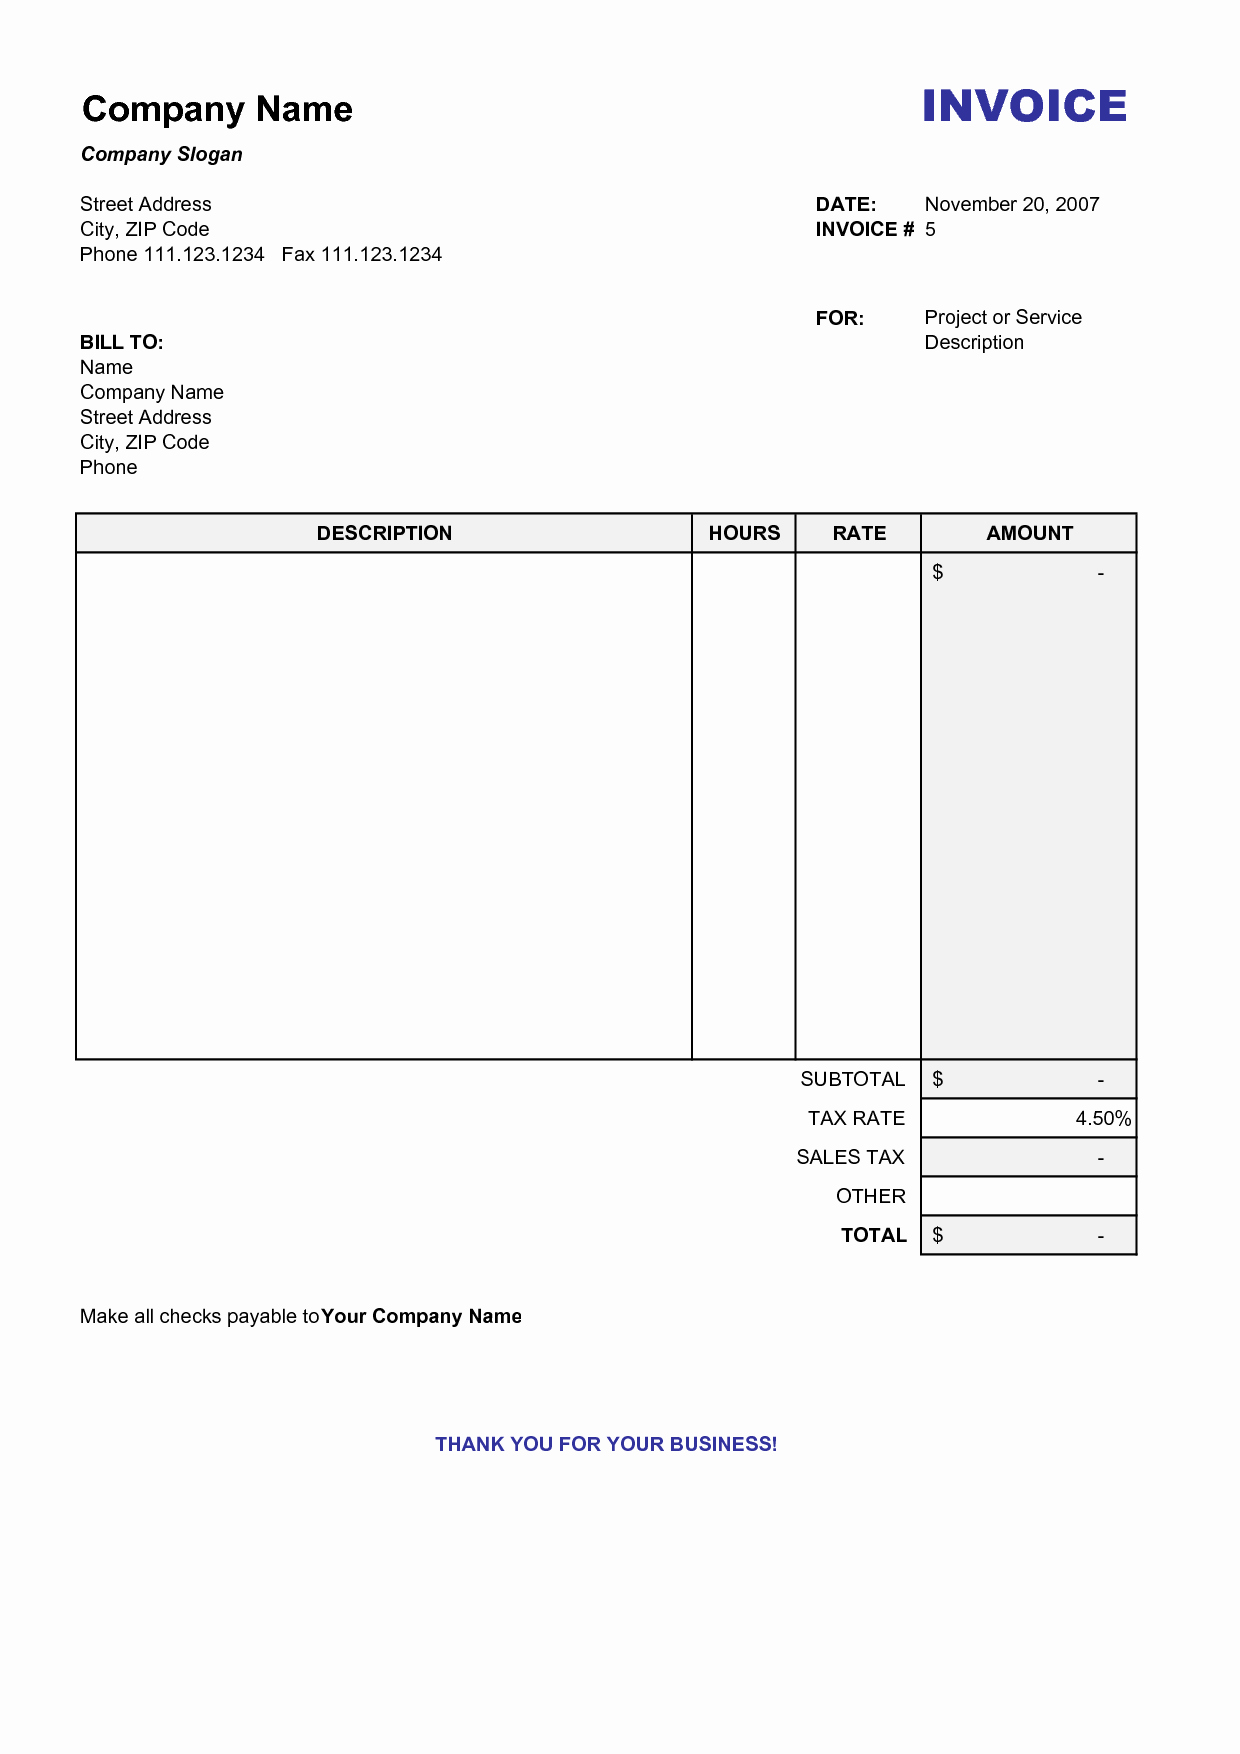 Invoice Template for Contract Work Luxury Itemized Billing Statement Template Invoice Pinterest Free